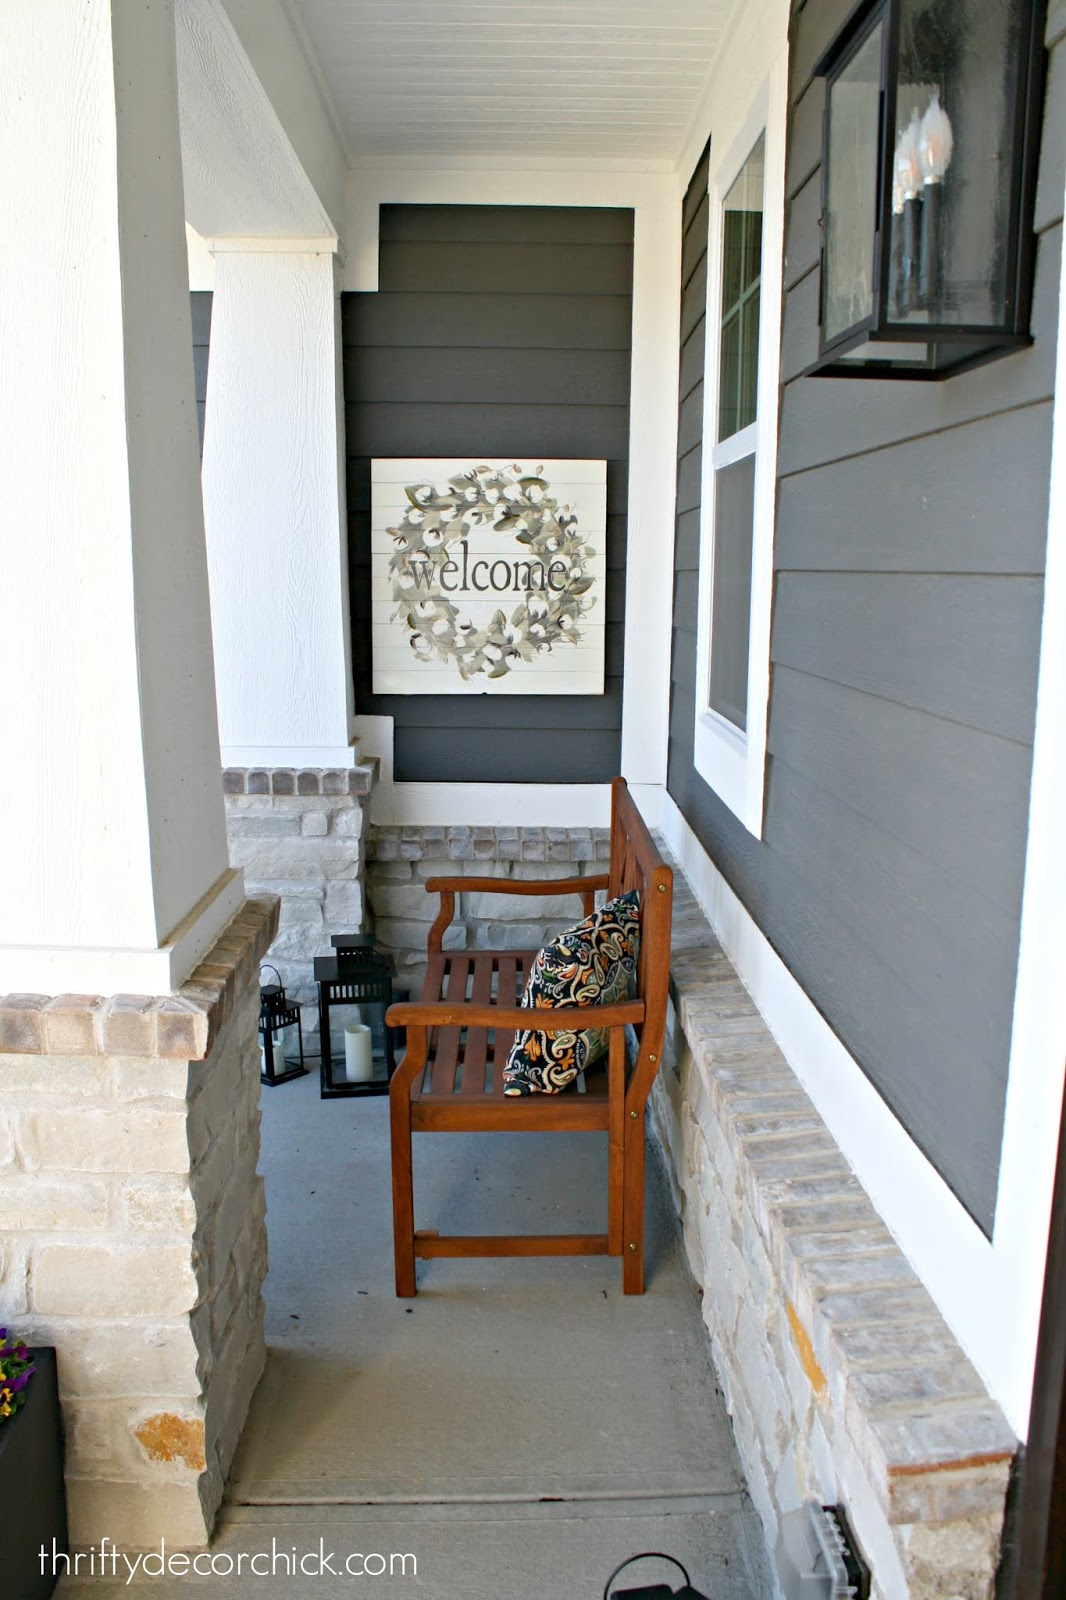 Wood bench on porch